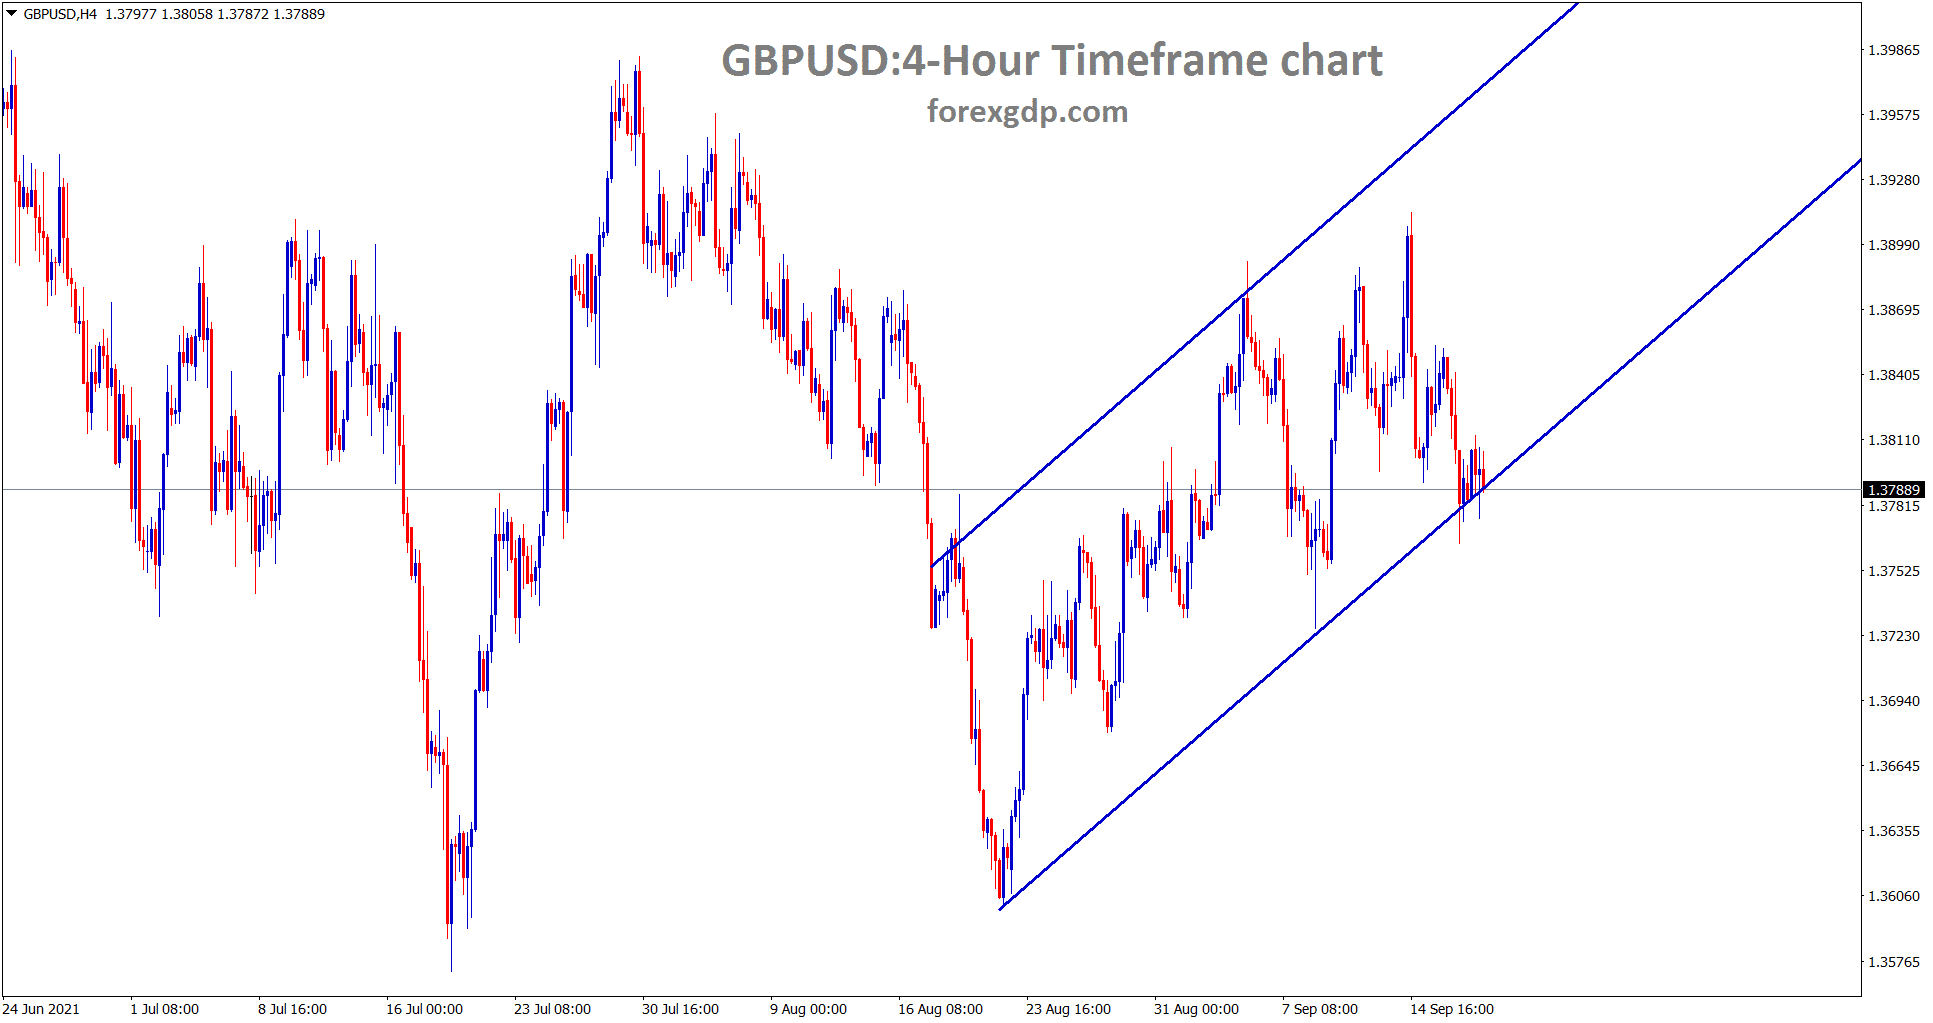 GBPUSD is ranging in an uptrend line